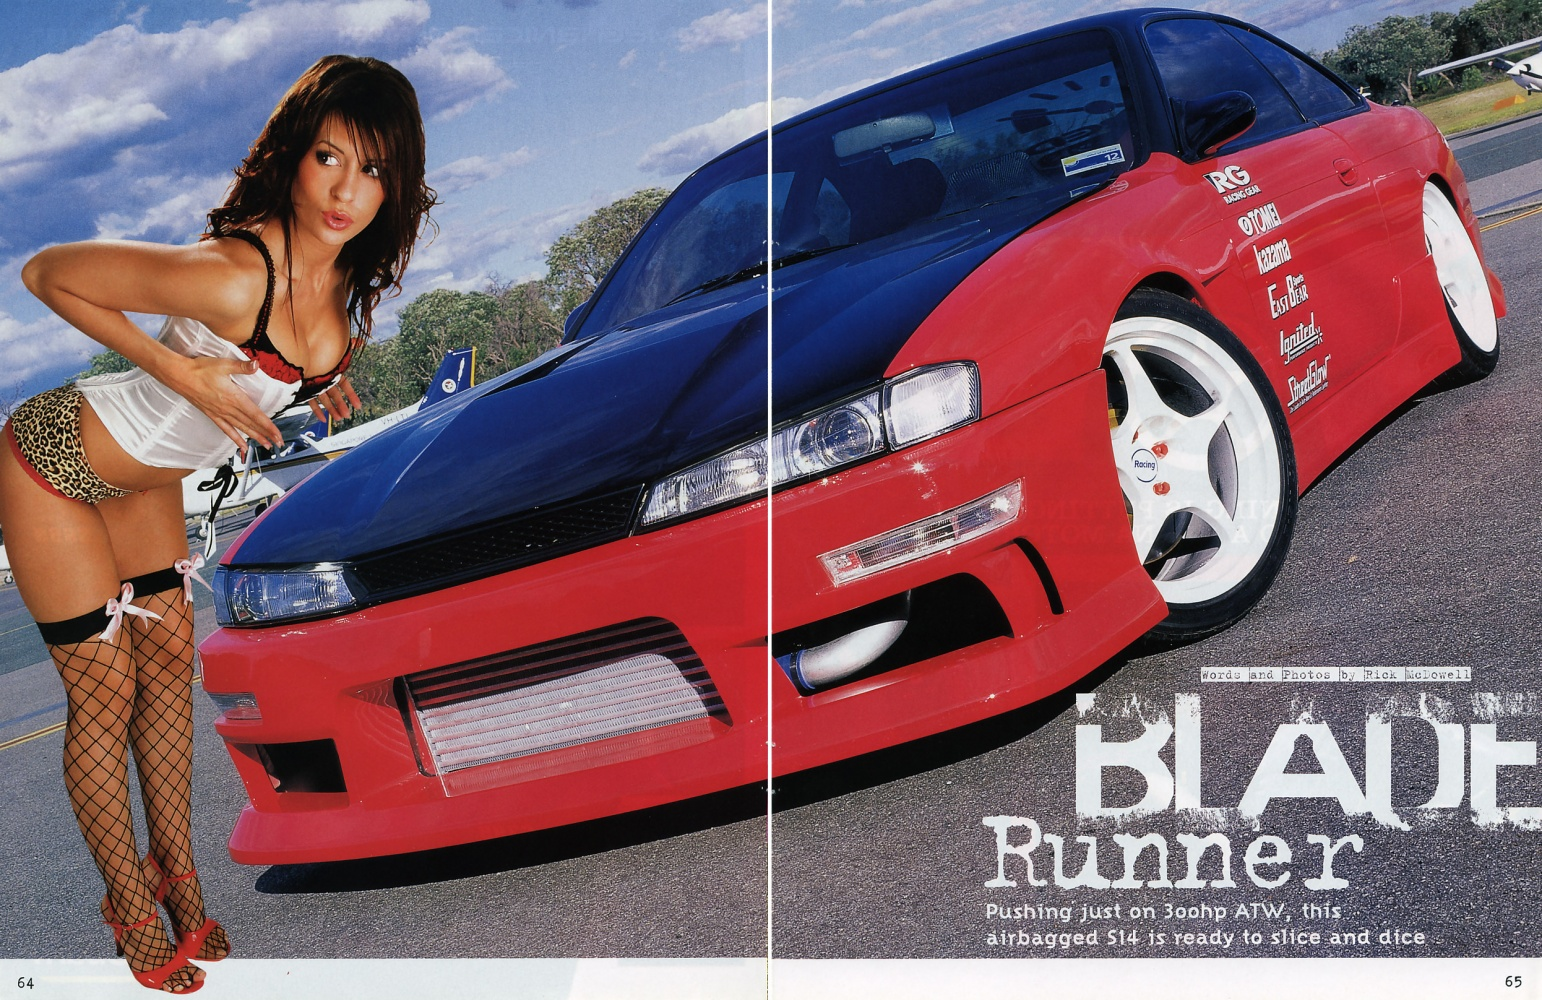 Used Cars For 3000 >> CPINK v1 - Hot 4's & Performance Cars (Nissan Special) | C-Red Tuning (Perth, Western Australia)